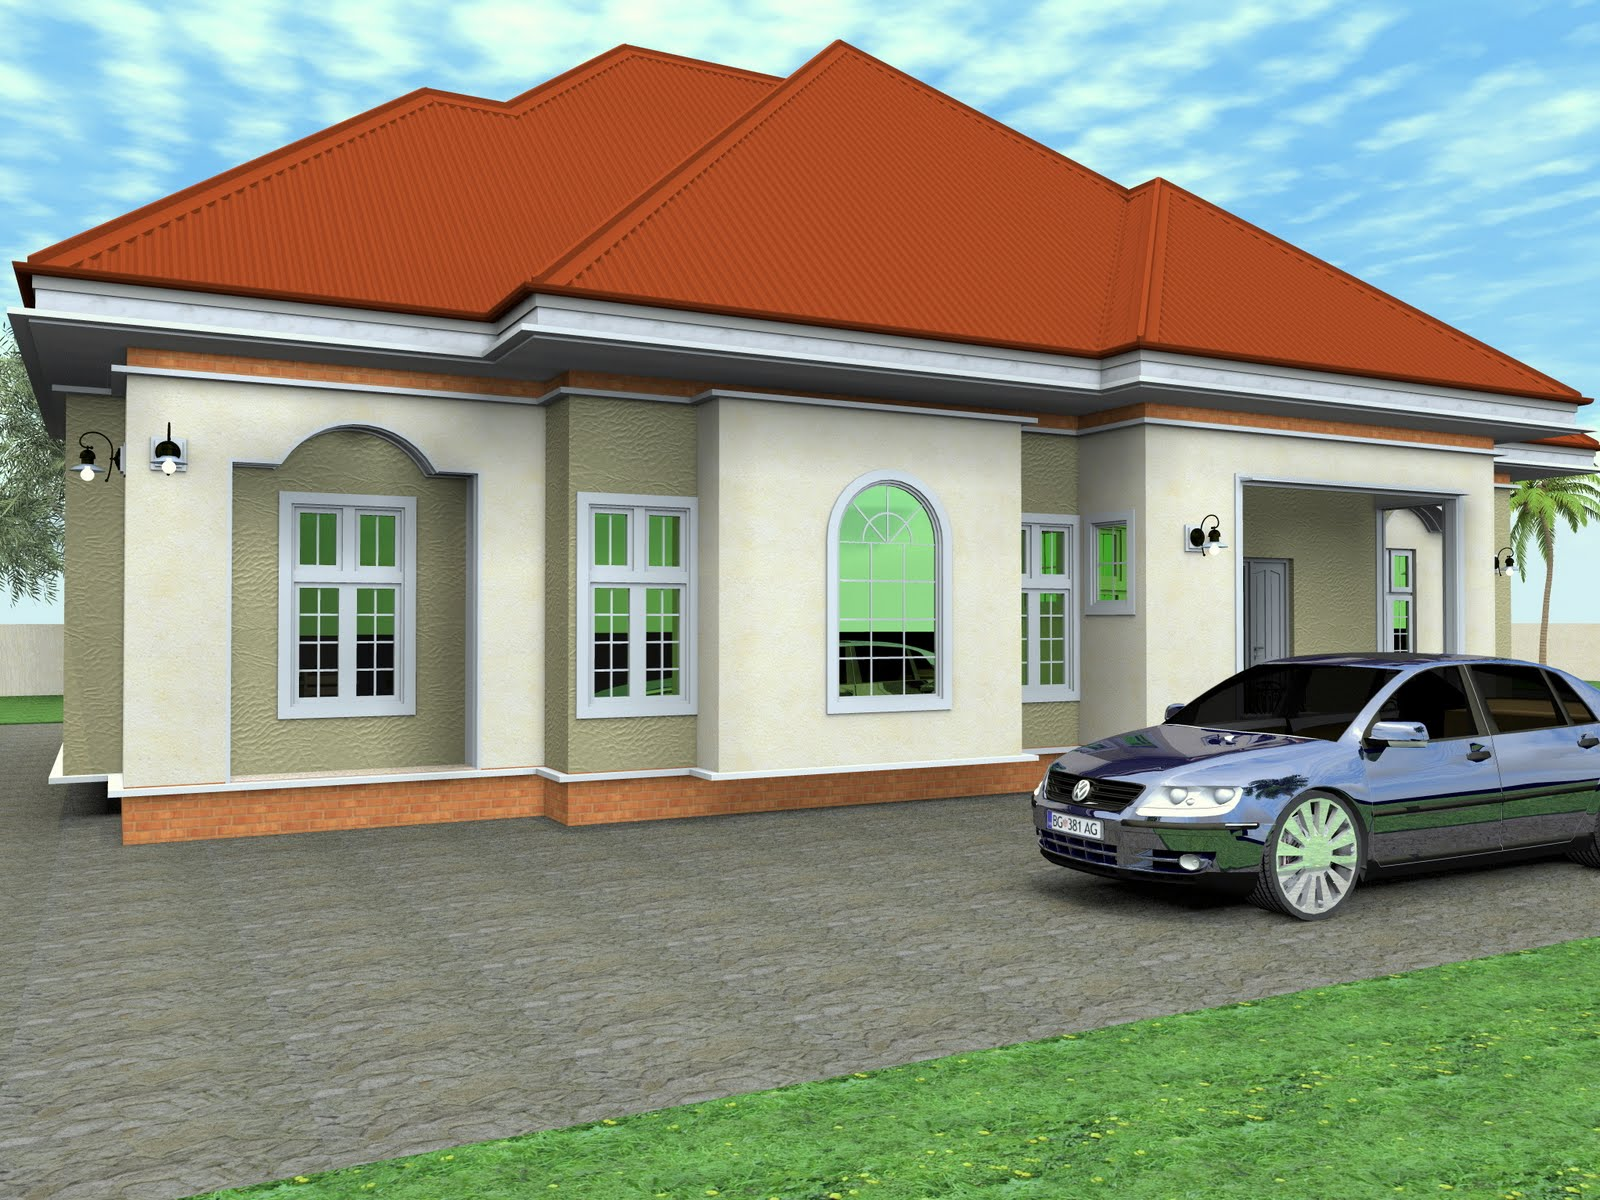 Kenya Residential House Plans House Style Ideas